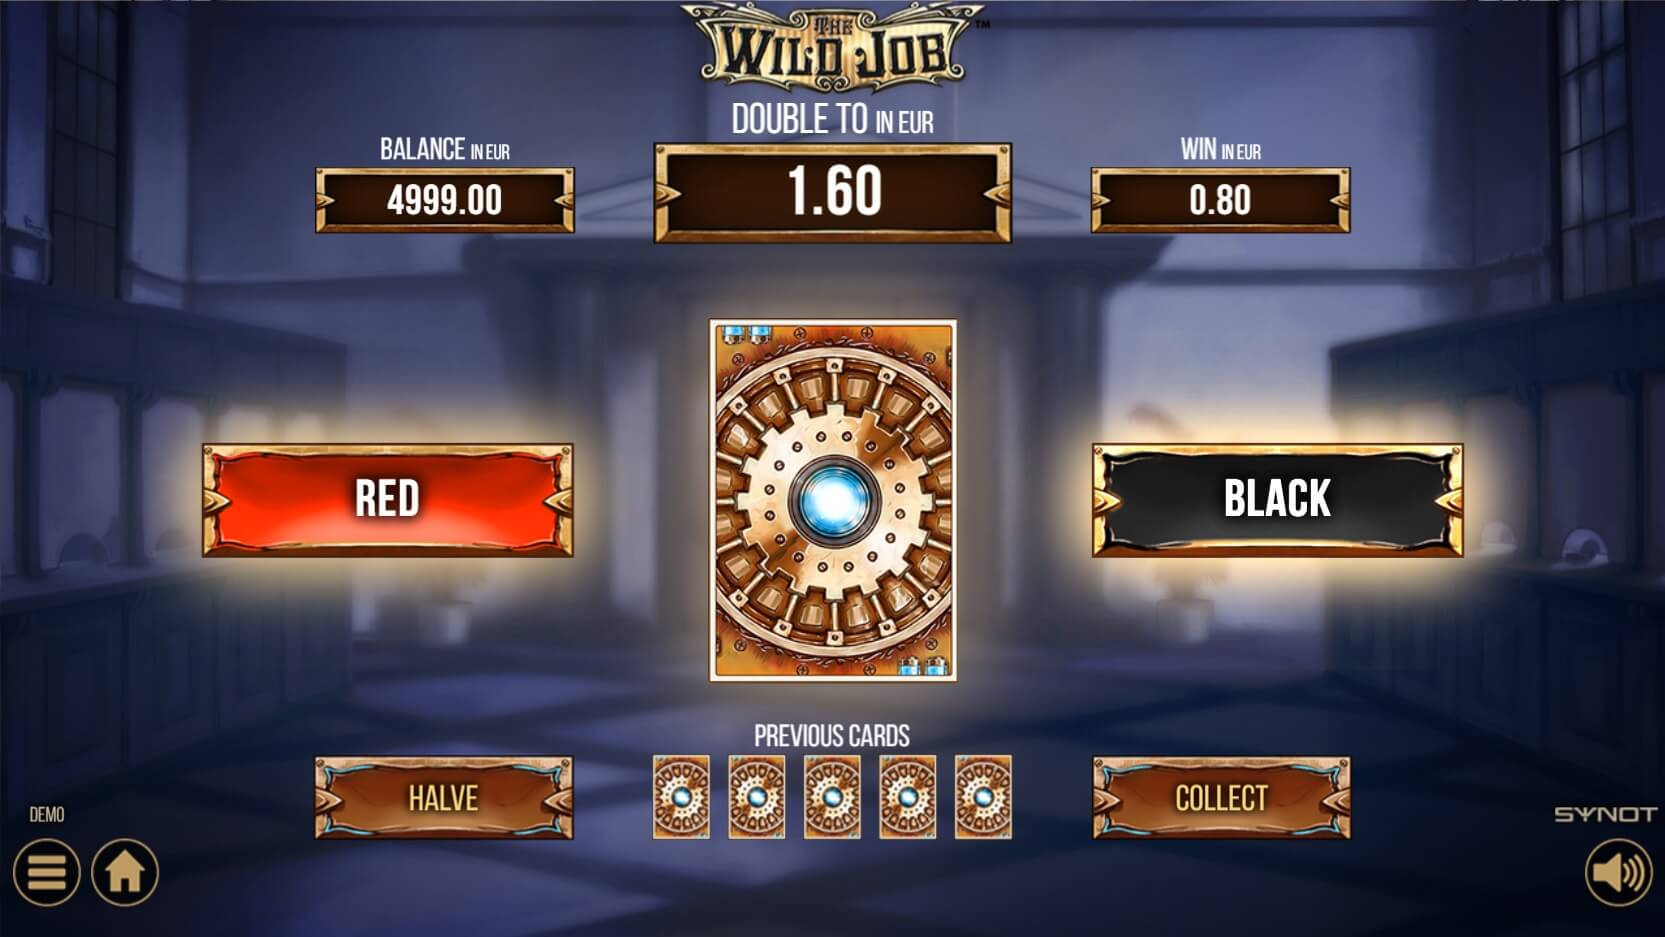 Escape into the beautiful nature of the orient.When enough stacks of tigers land on the reels, you will have the chance to win three jackpot prizes and on any spin you could trigger a free spins game with loads of extra wilds on the reels.Tiger Stacks is a 5 reel slot with 3 rows and 30 fixed paylines.Akdağmadeni